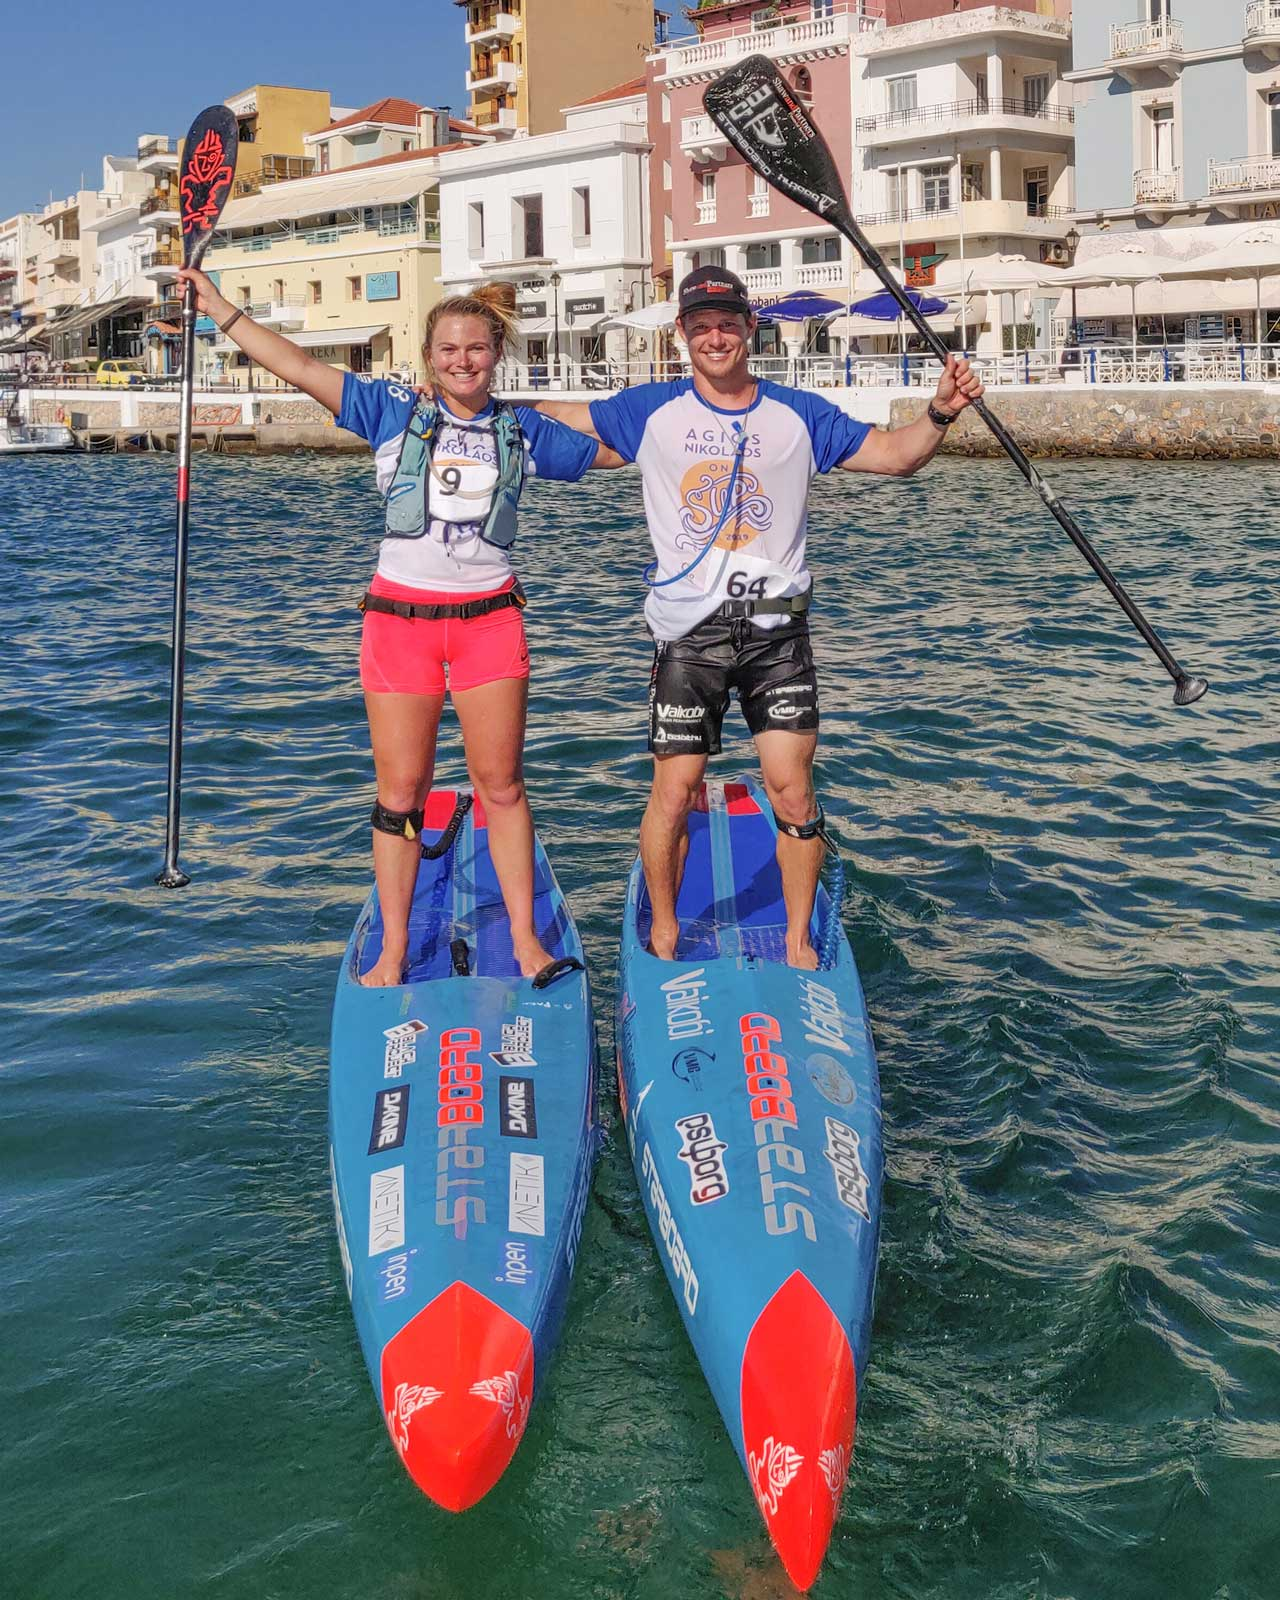 starboard-sup-stand-up-paddelboarding-eurotour-sup-Agios-Nikolaos-Cretecourse-map-ld-event-race_15km-north-wind-1280